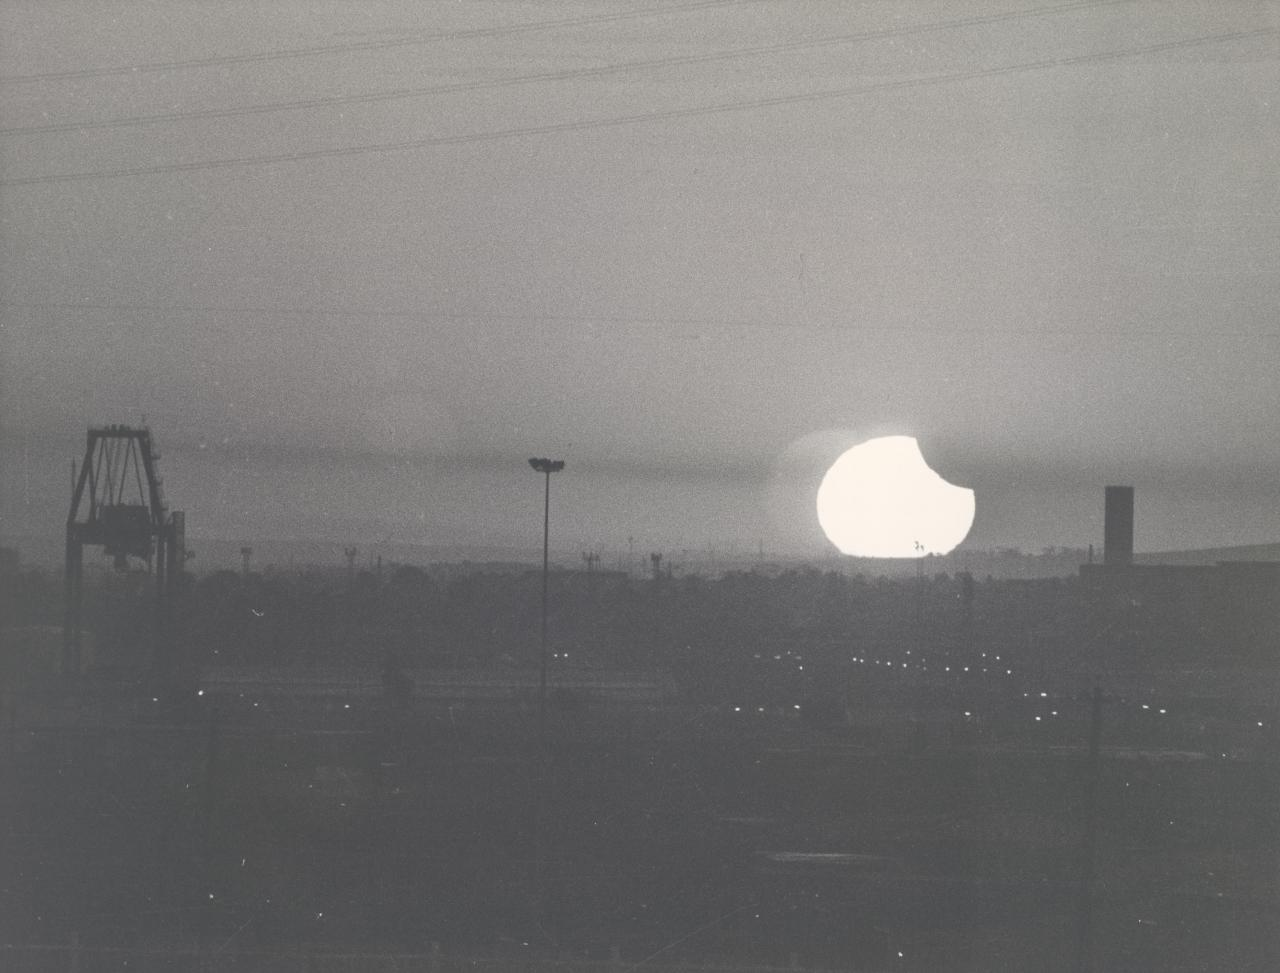 Smog and eclipse, Melbourne, 10th April 1986